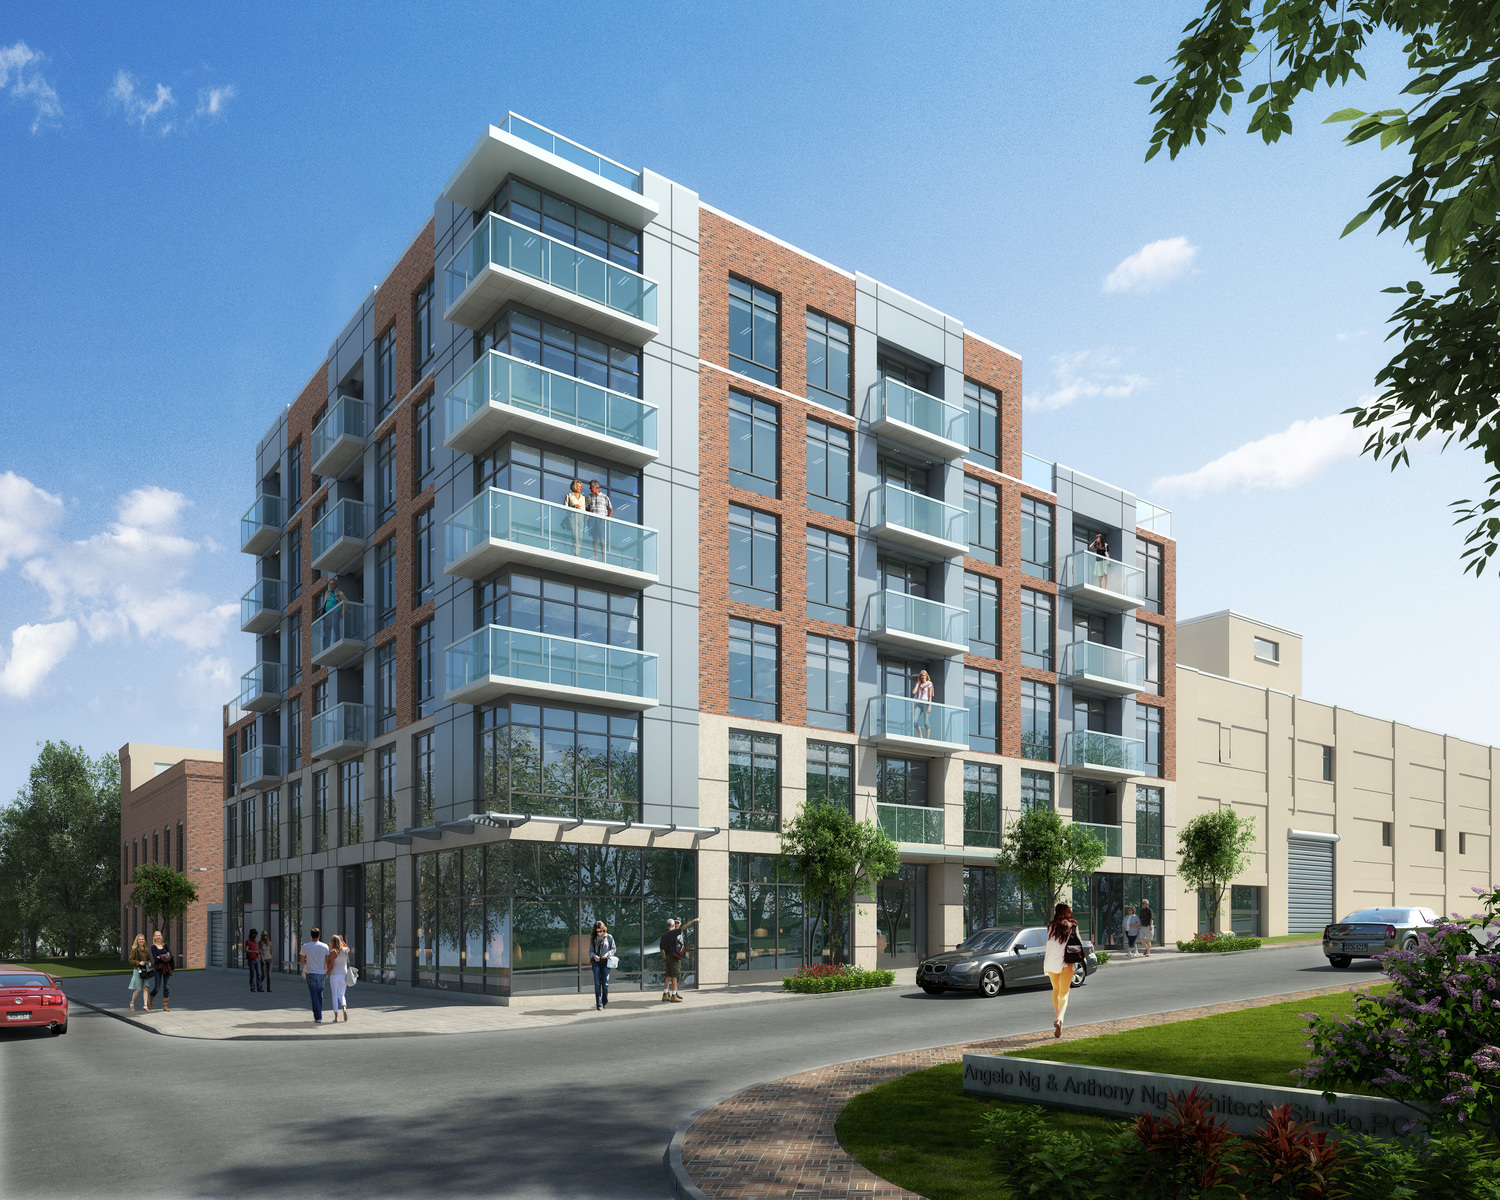 23-01 41st Avenue, rendering by Architects Studio